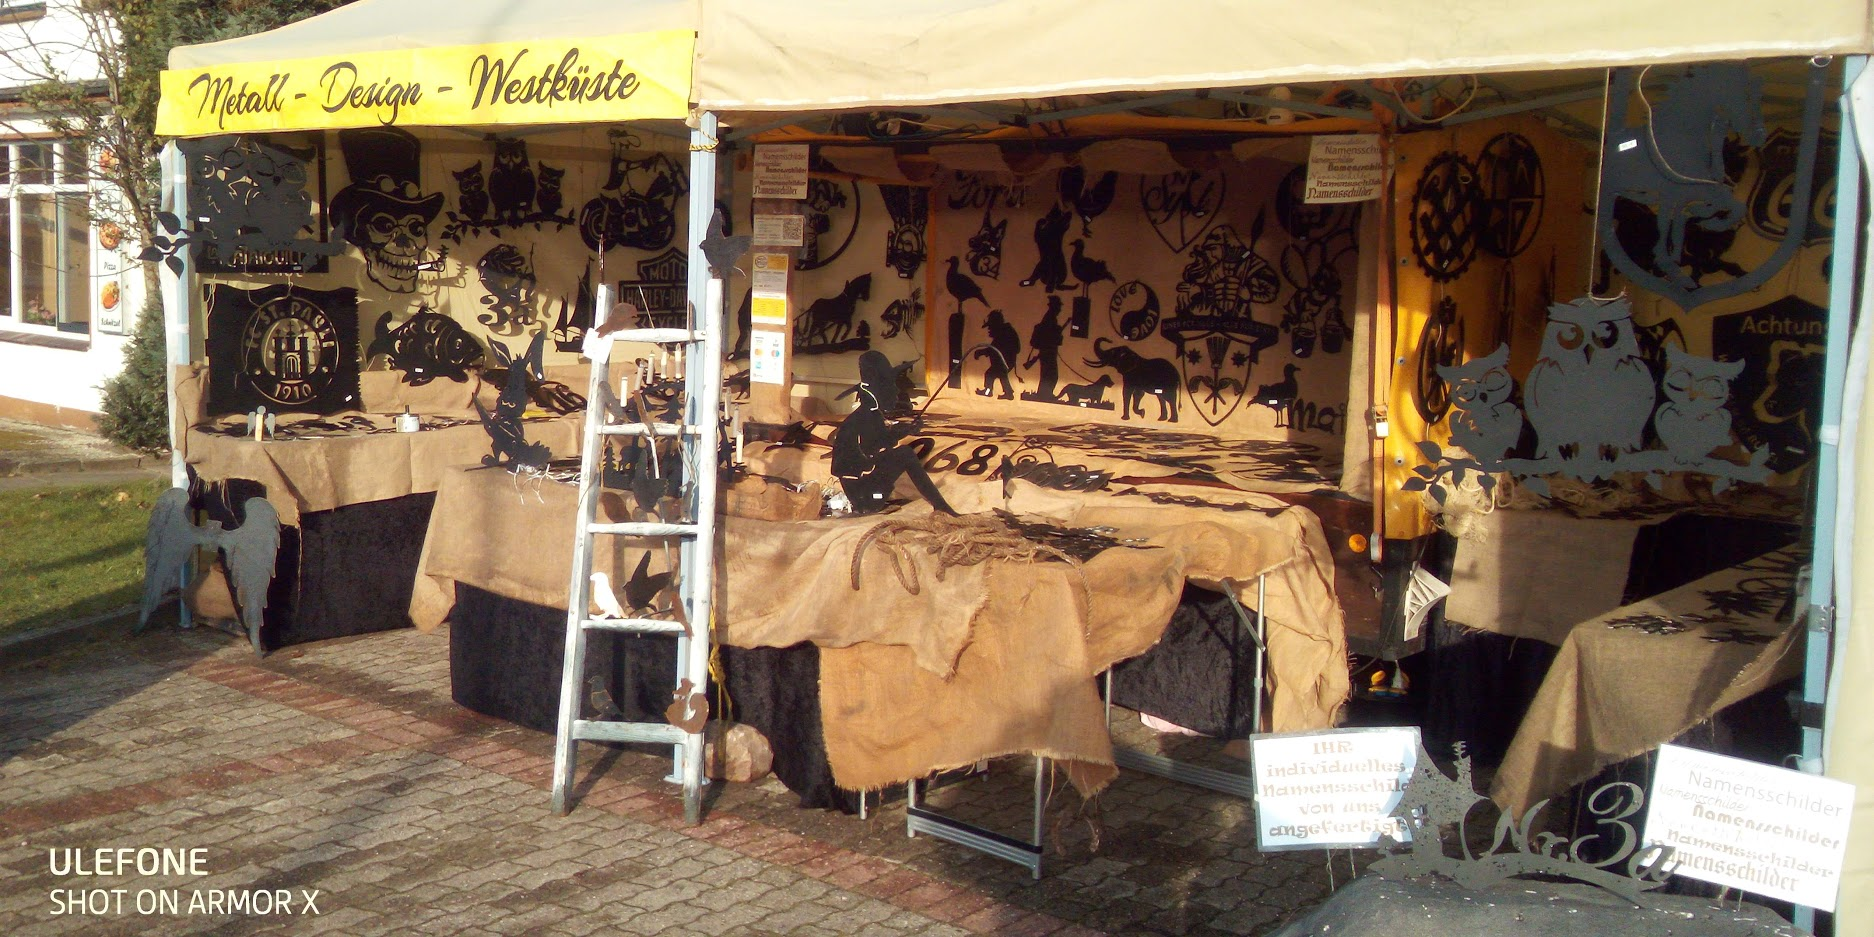 Metall-Design Westküste